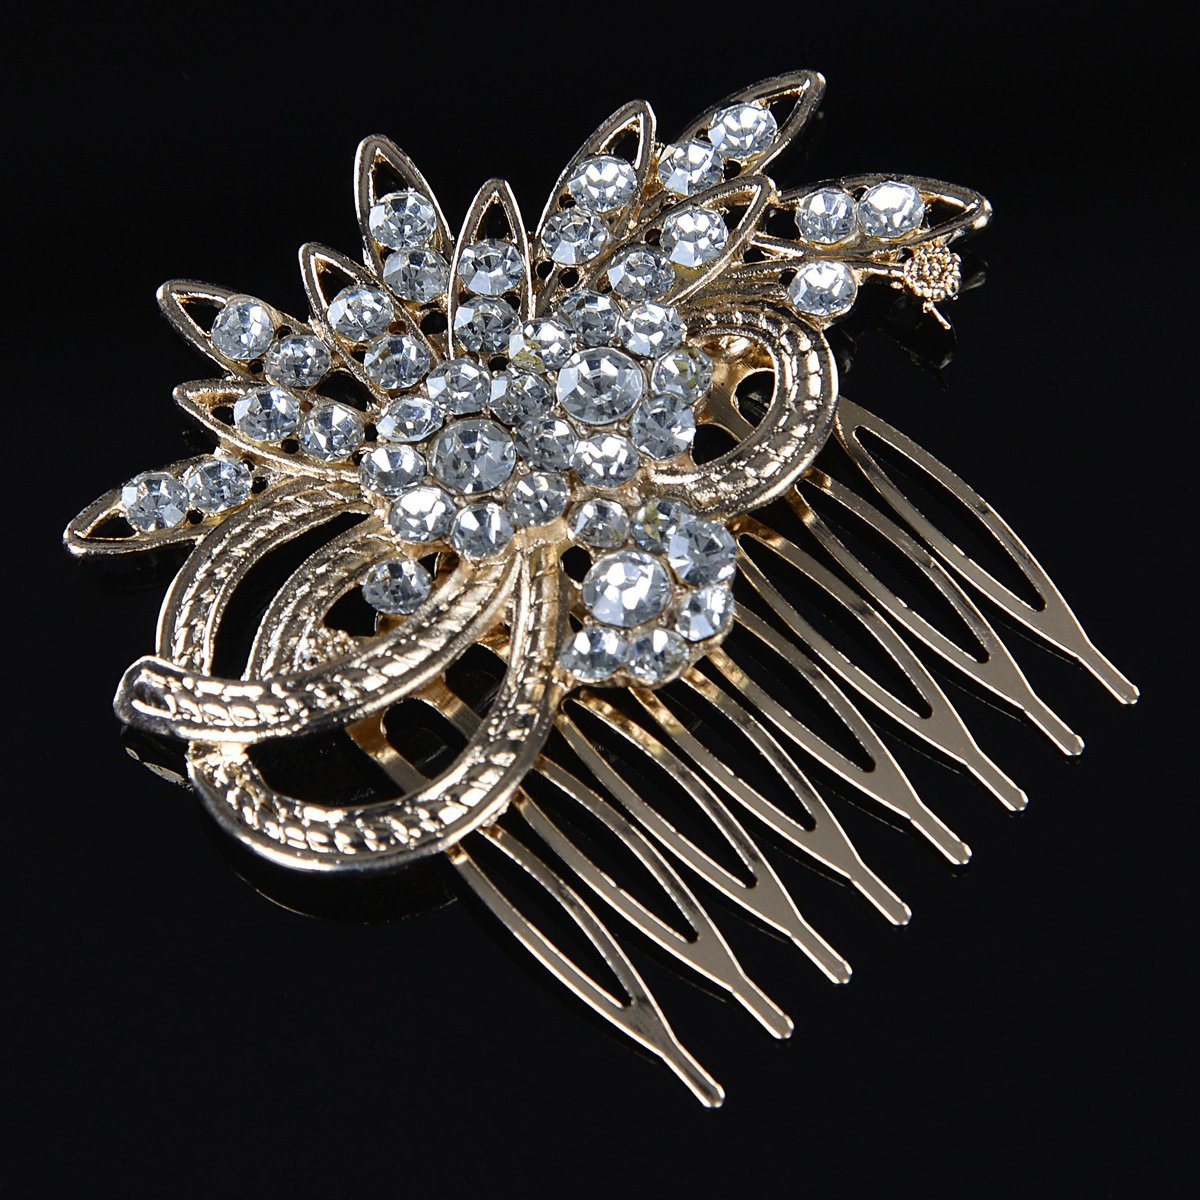 Remedios Vintage Crystal Bridal Hair Comb Wedding Hair Accessory, Light Gold 3